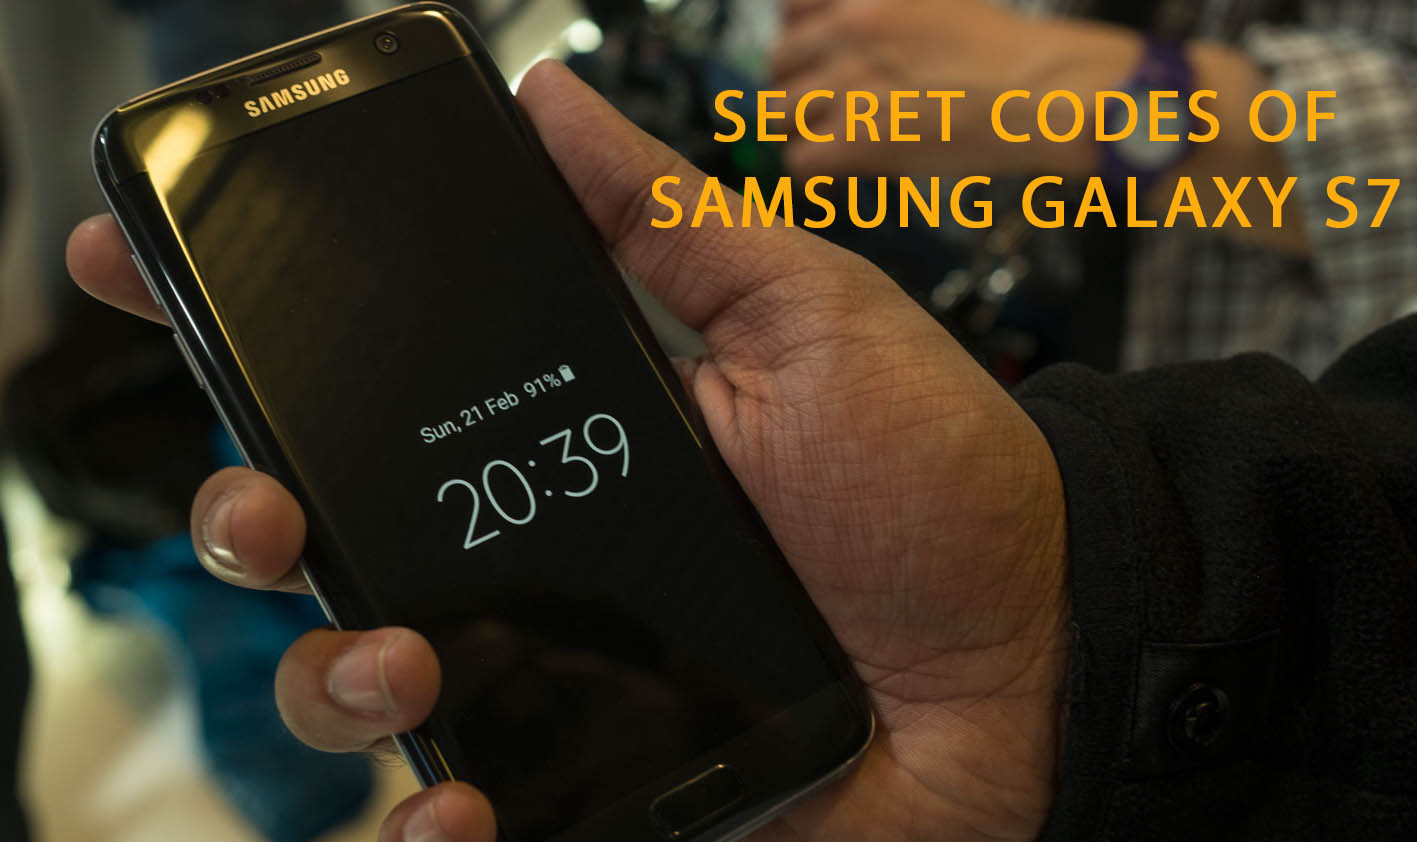 samsung galaxy s7 secret codes